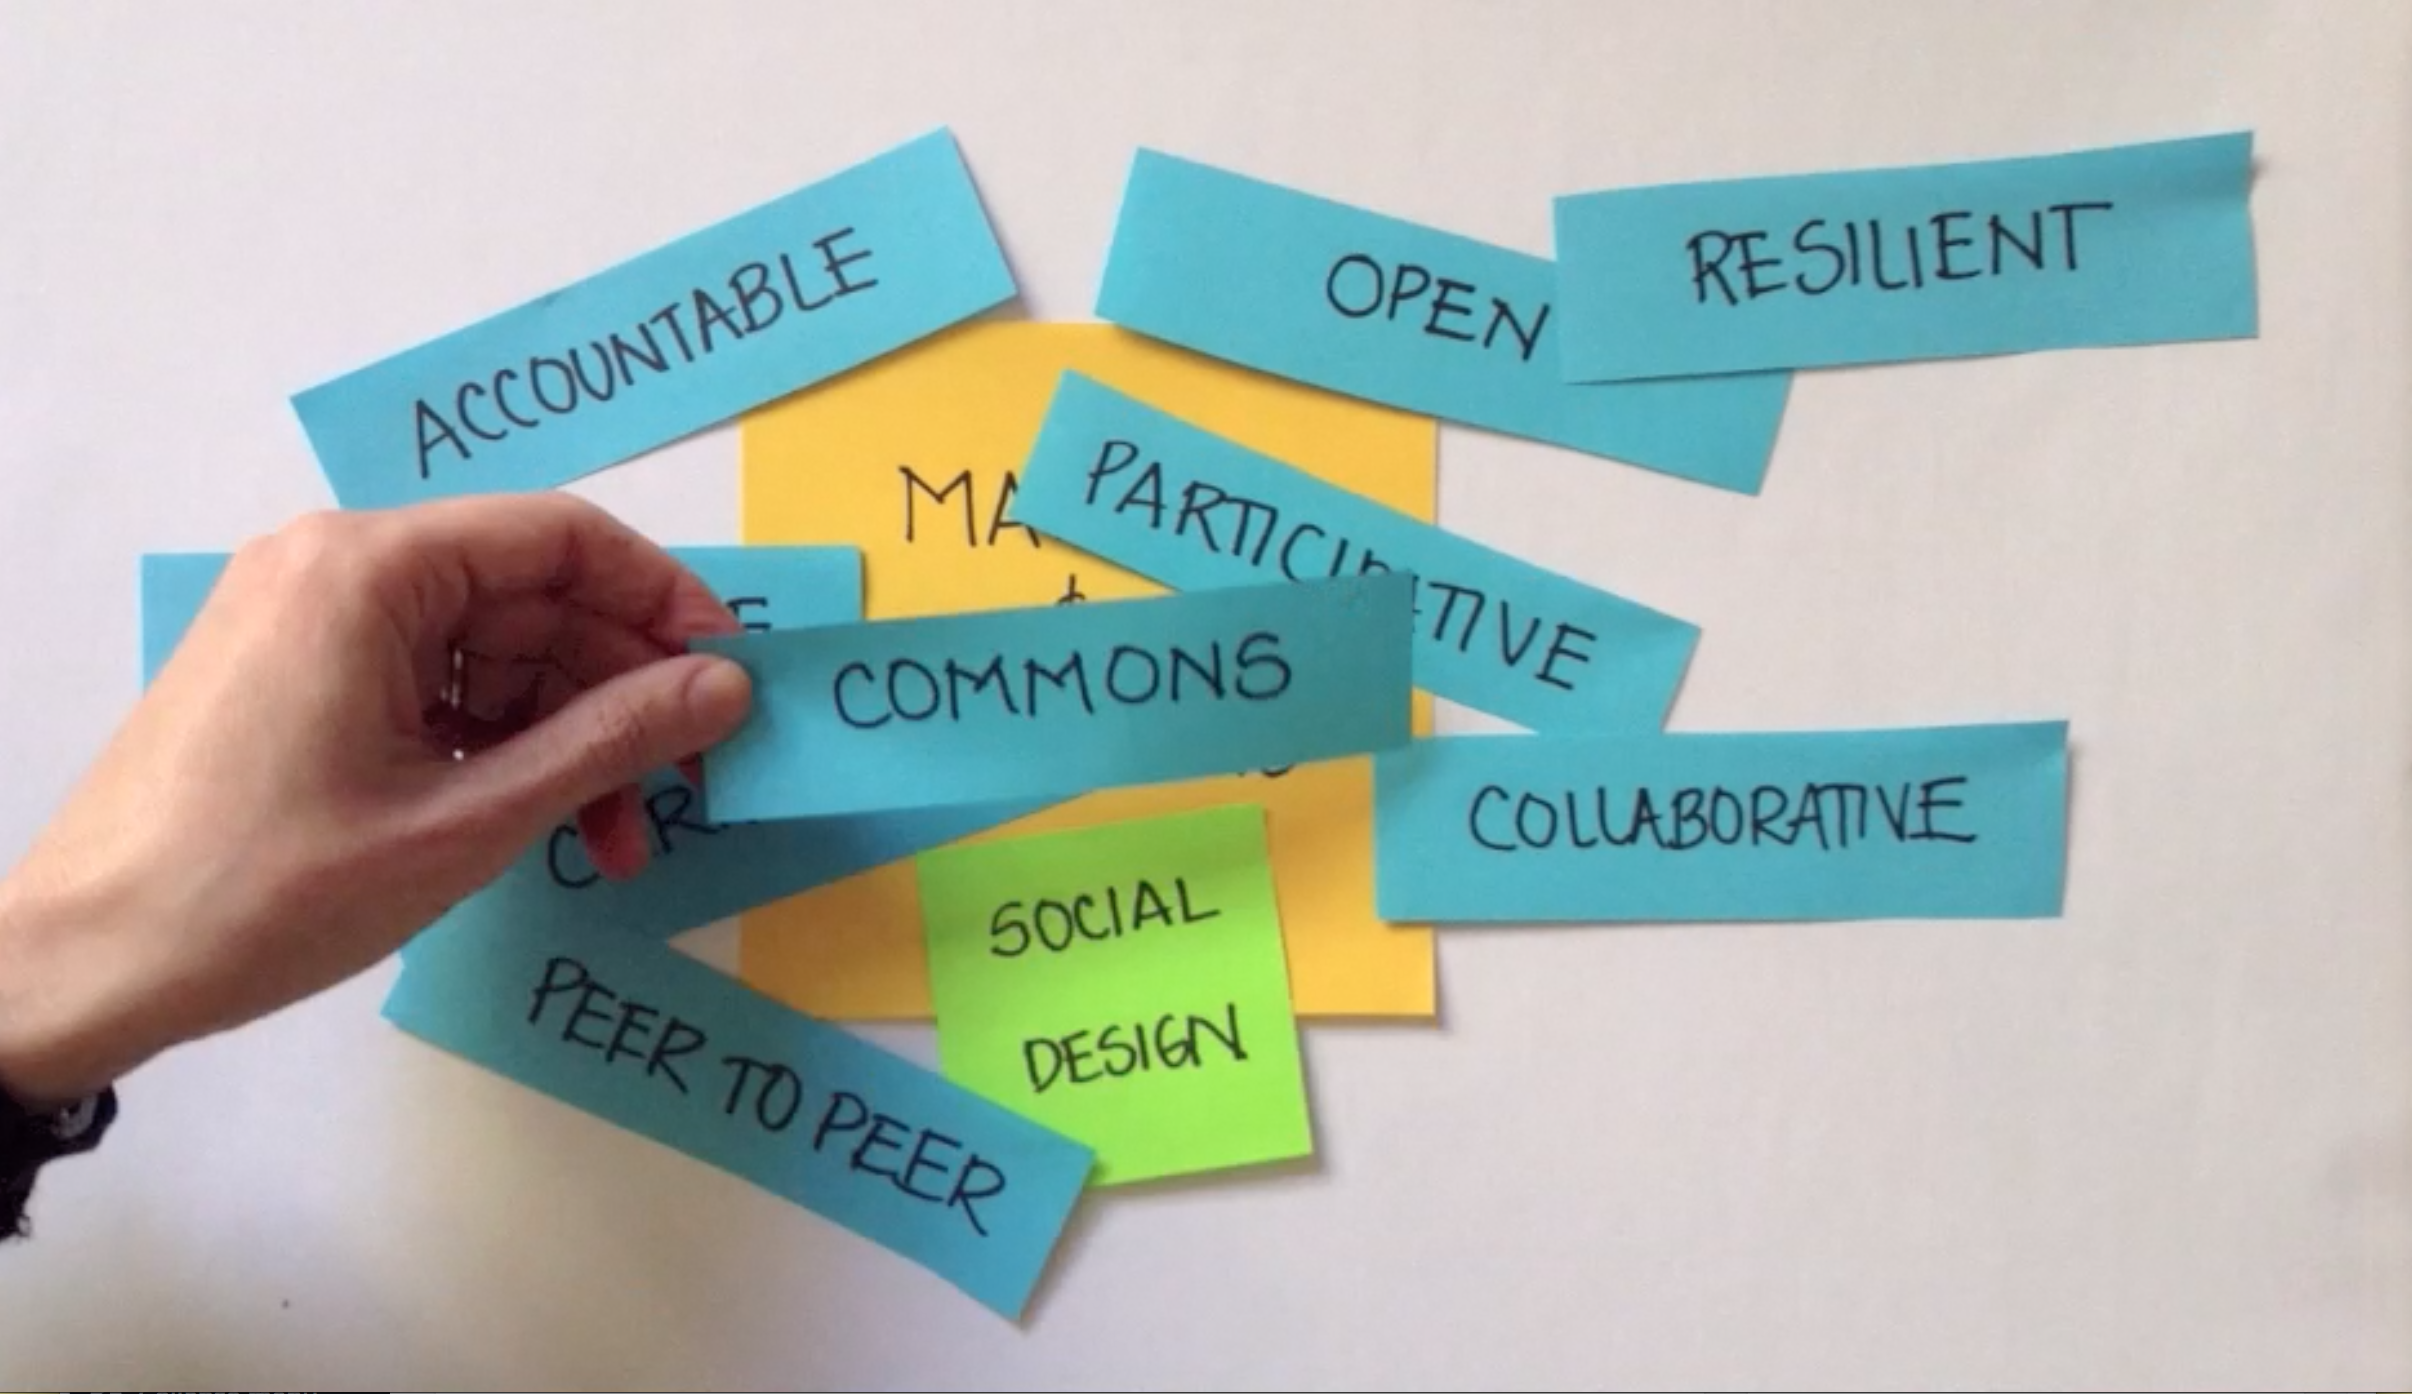 insights on social design suo co a video essay commenting on the practices and issues that surround ldquosocial designrdquo approaches the video was commissioned by the project mapping social